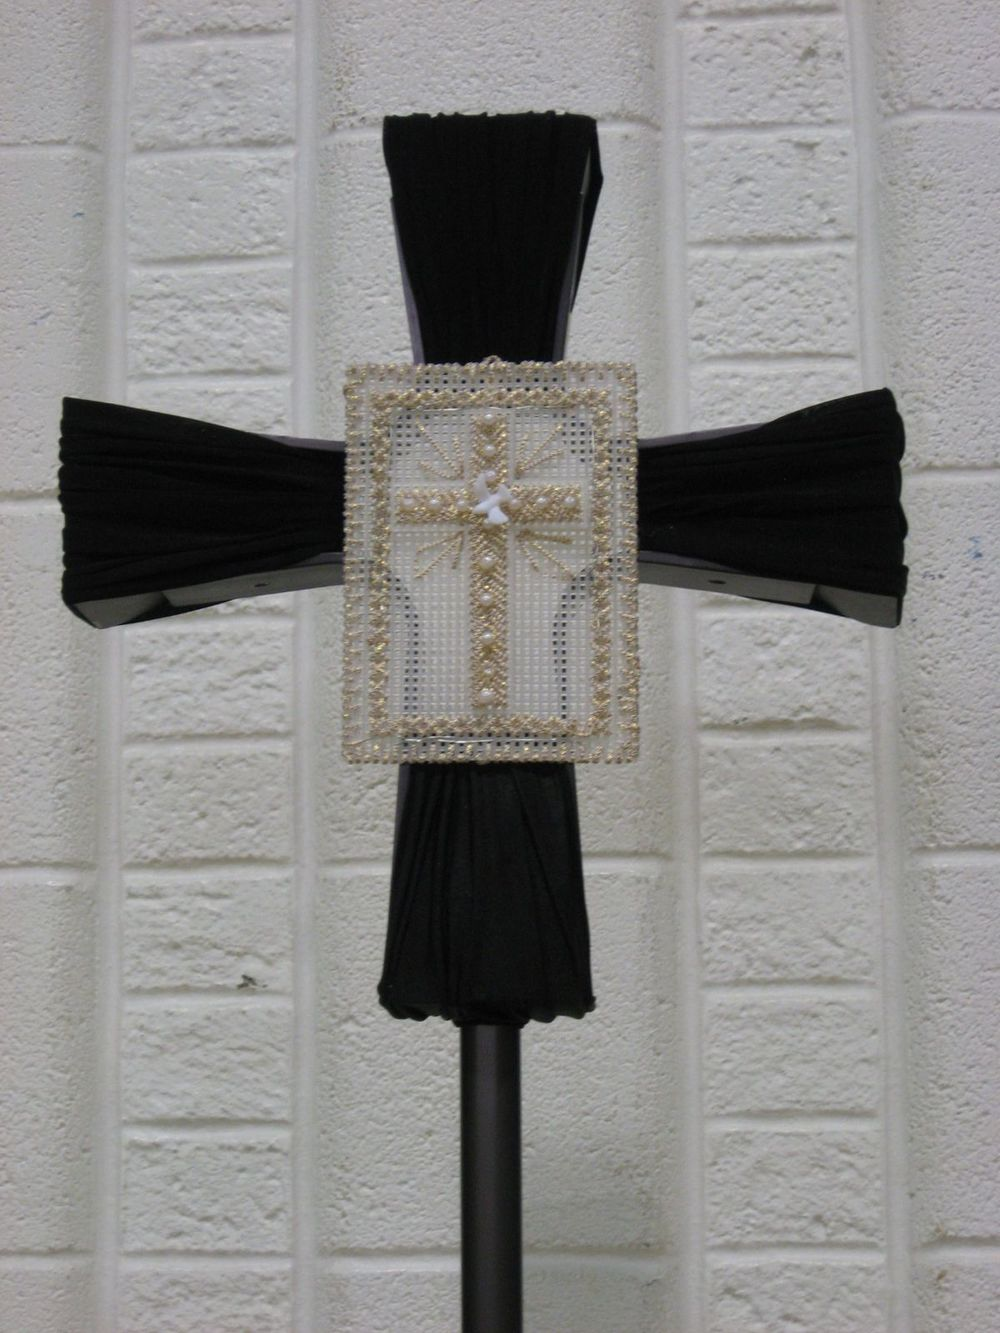 Processional Cross re-formed into Good Friday Cross